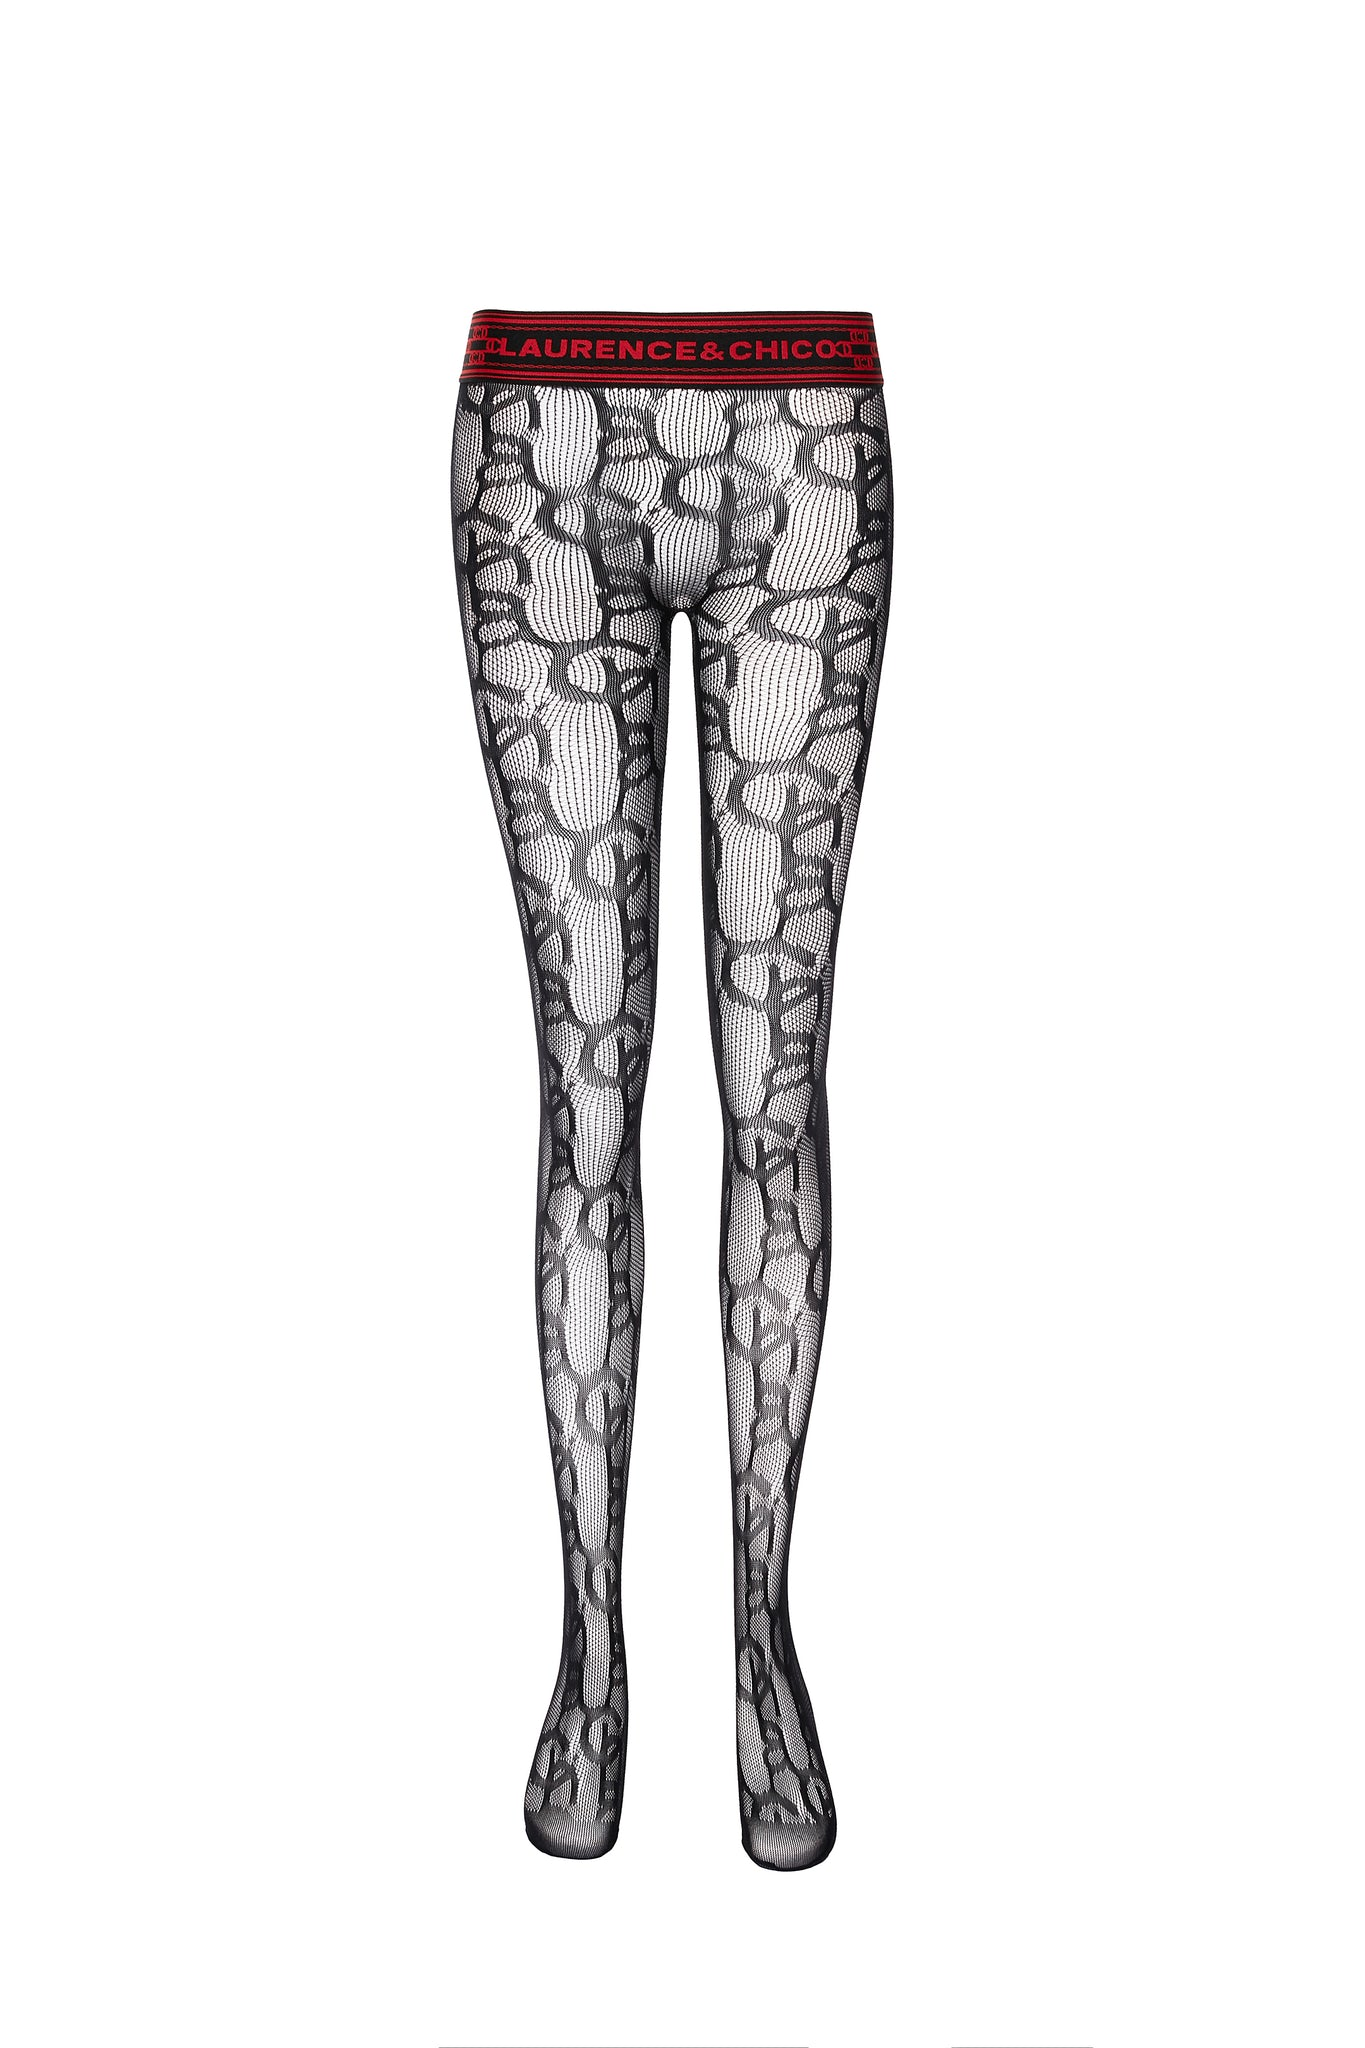 Laulau Chichi Crochet Tights